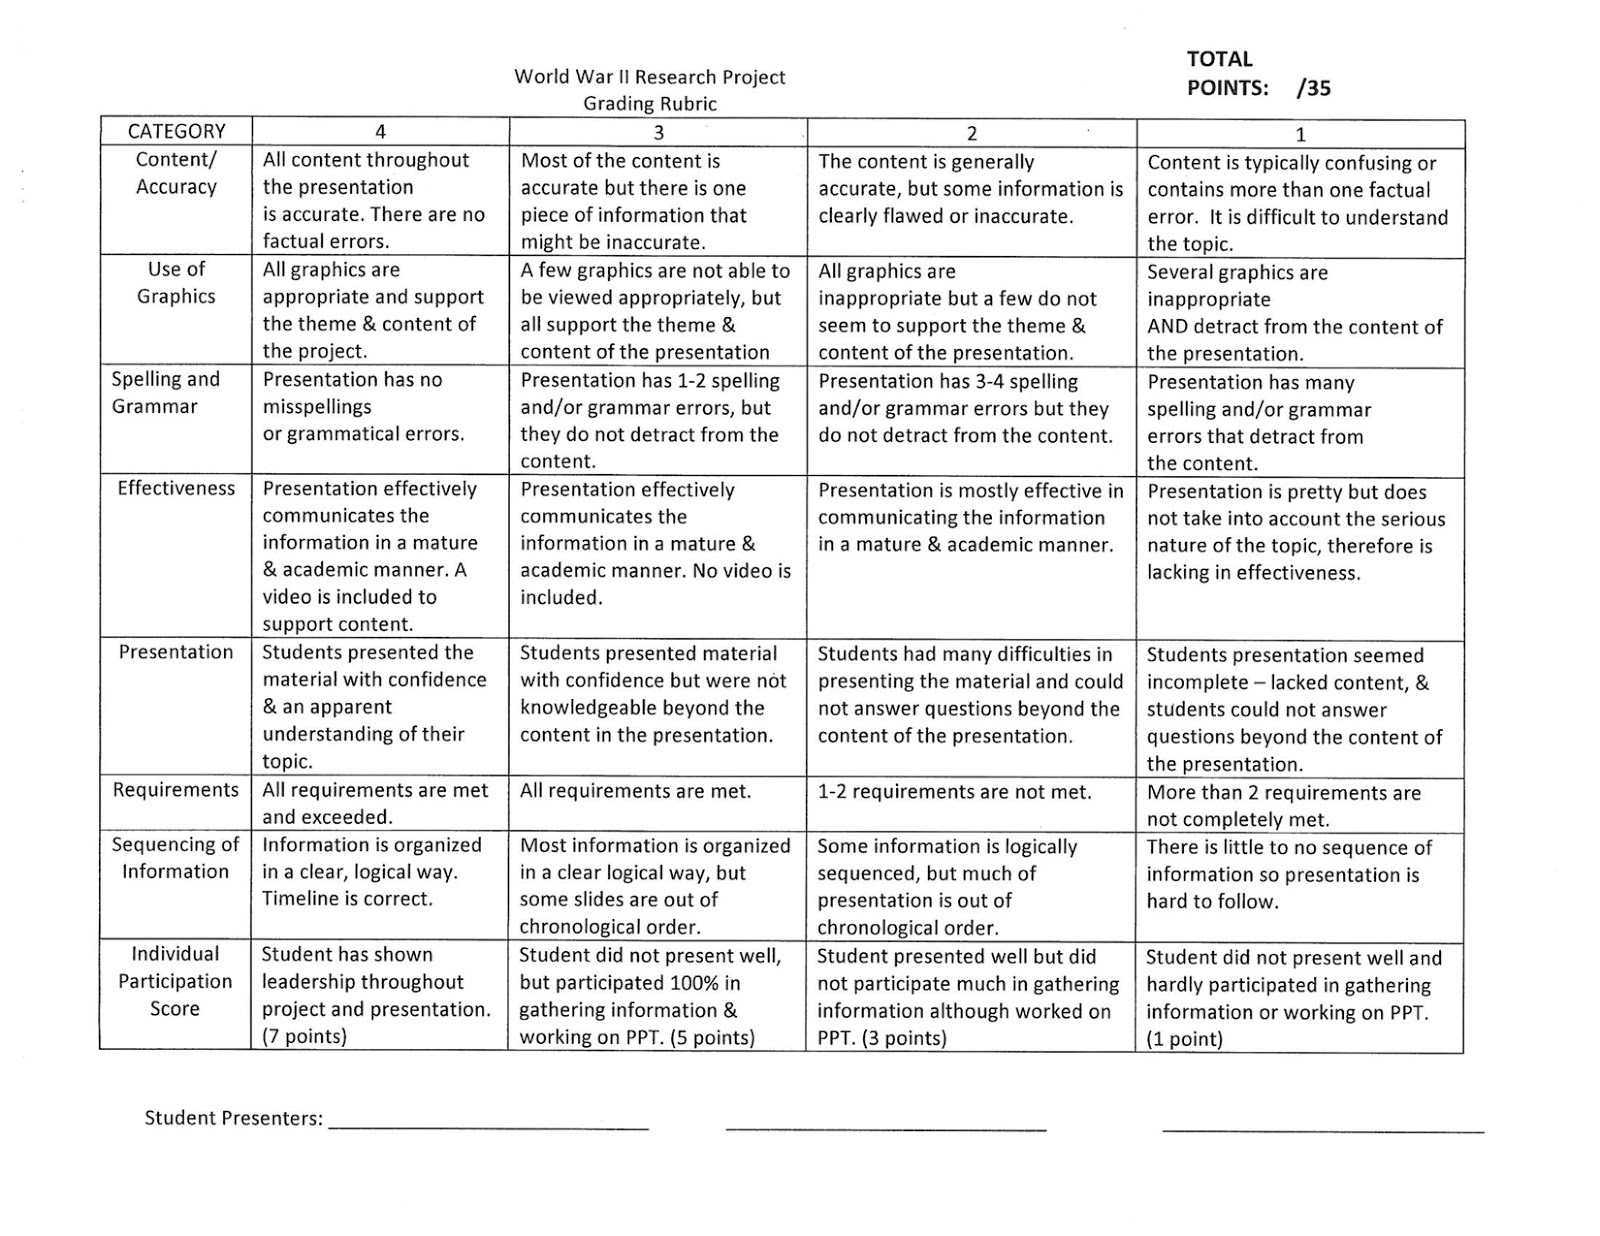 Thesis Paper Grading Rubric | [PDF]Research Paper Grading Rubric - Harding  University